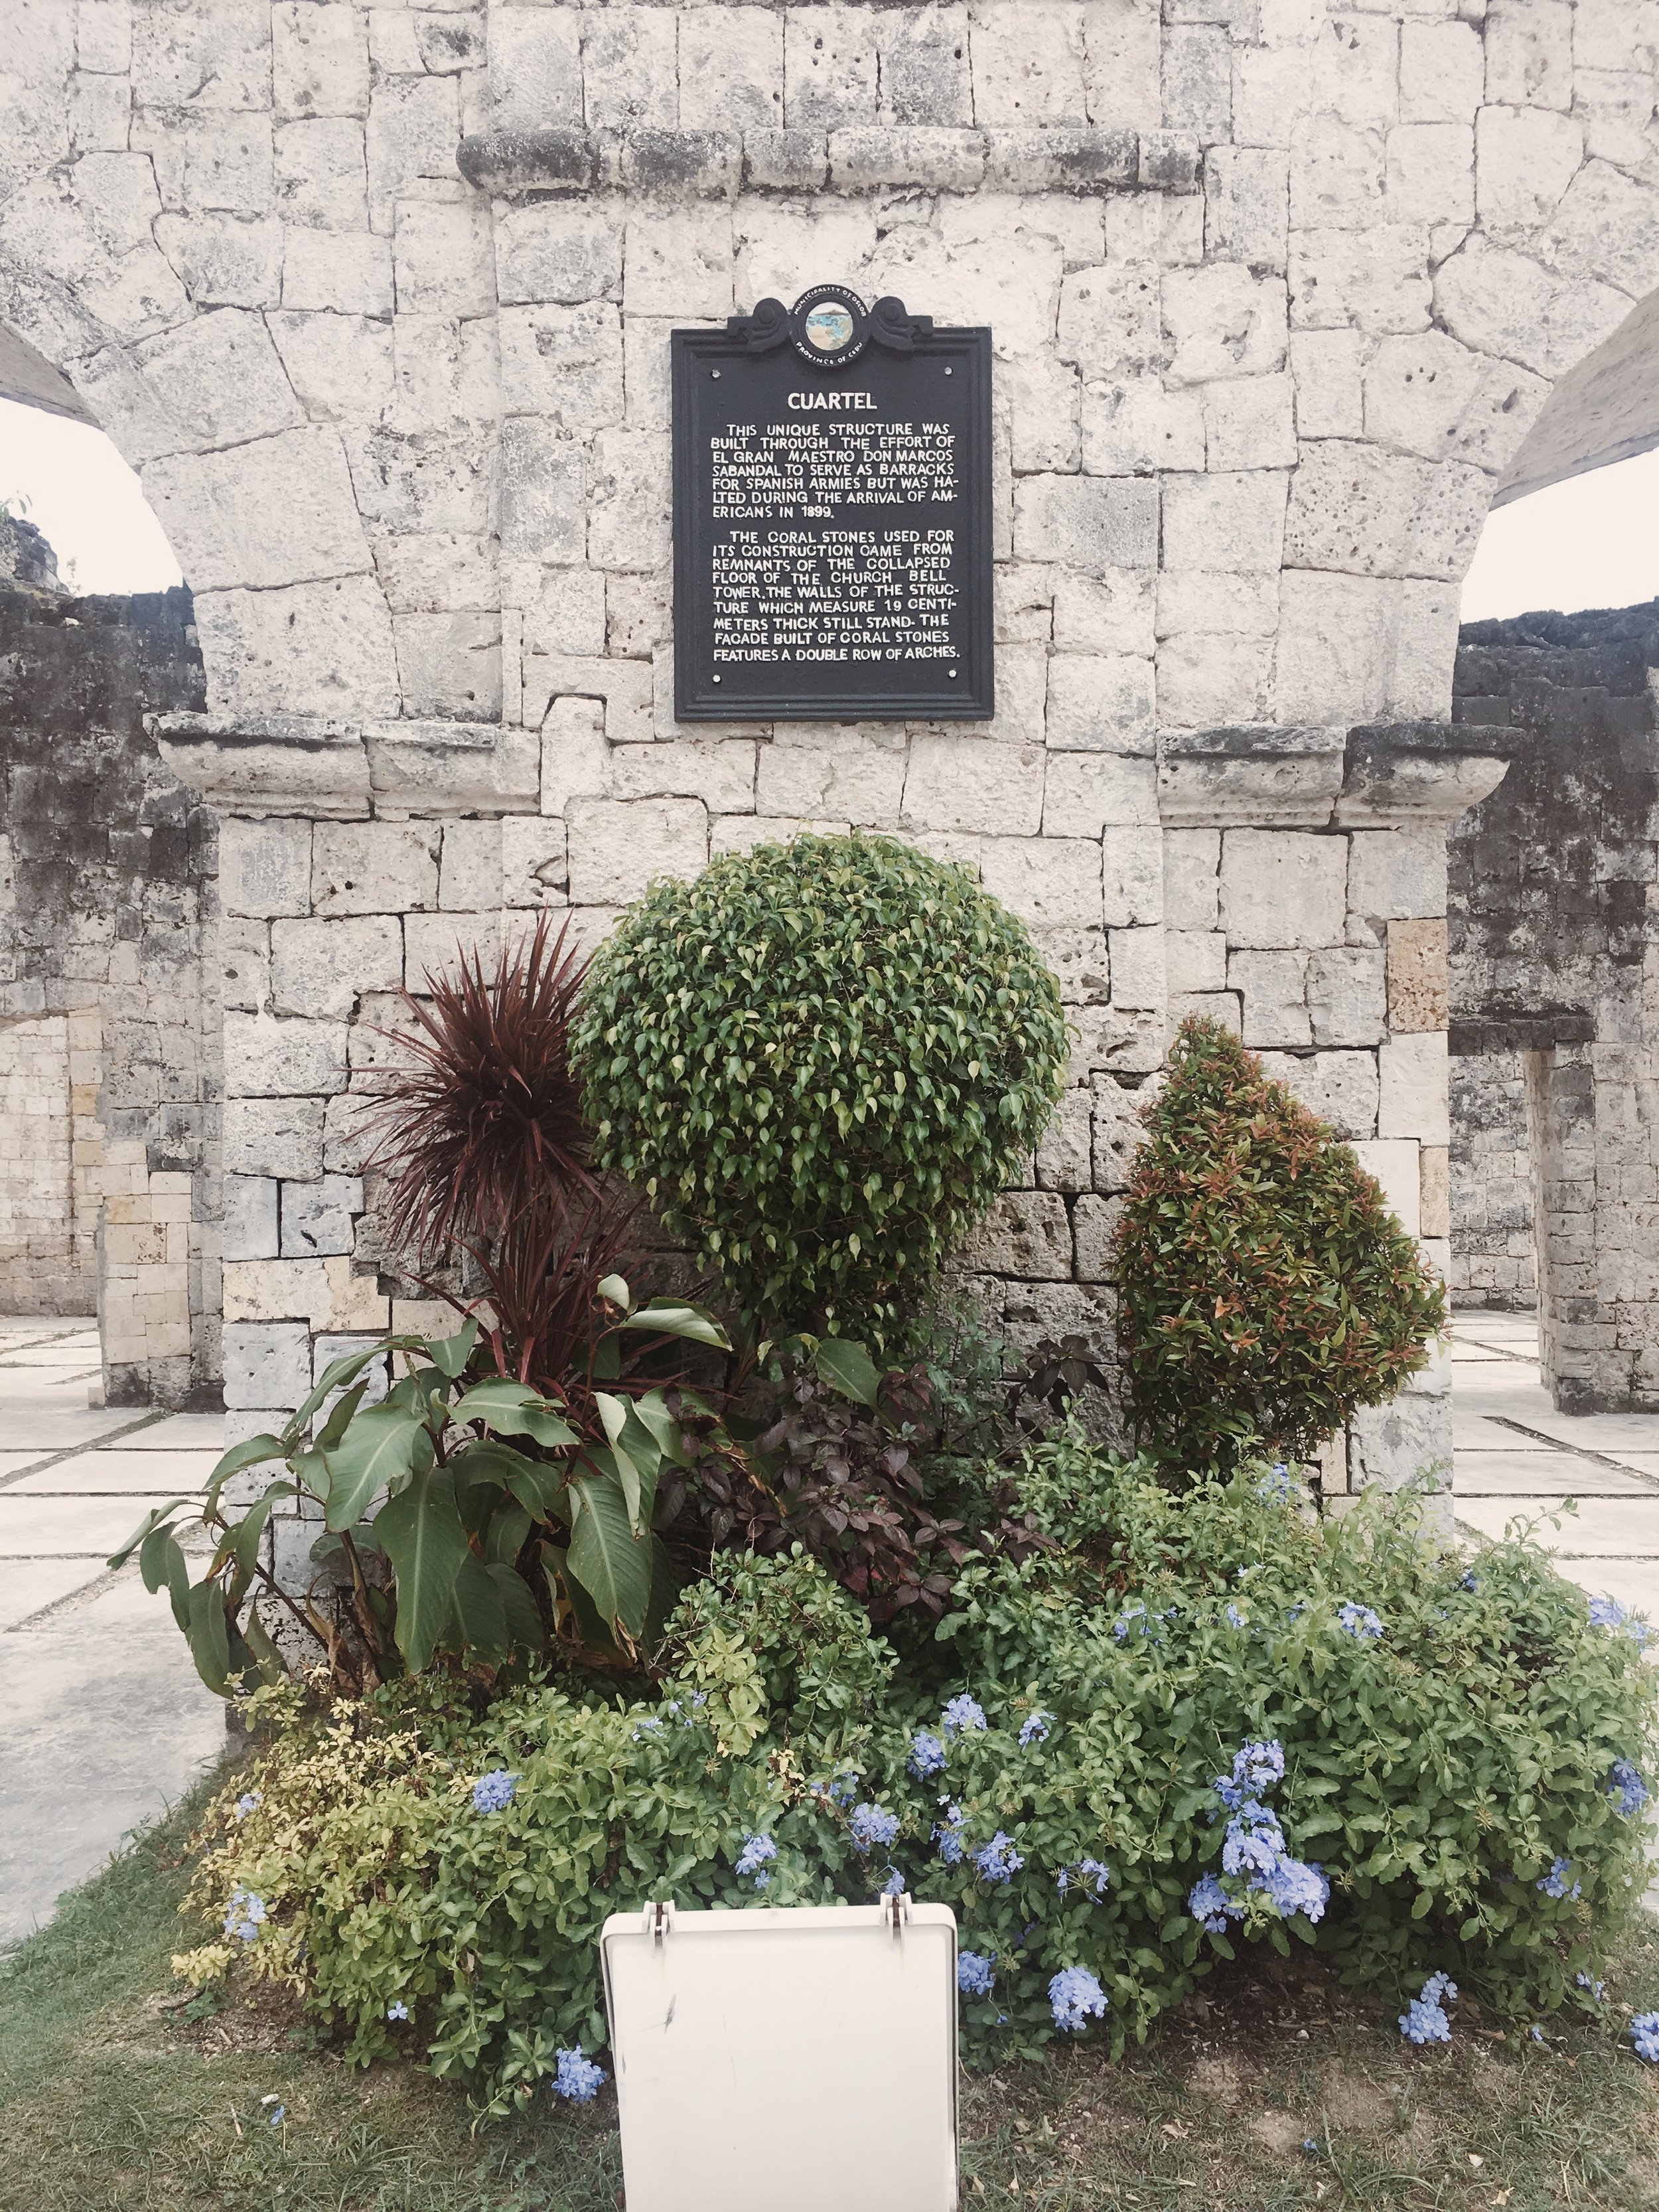 A Visit To Cebu's Historical Place: Cuartel and Baluarte 8